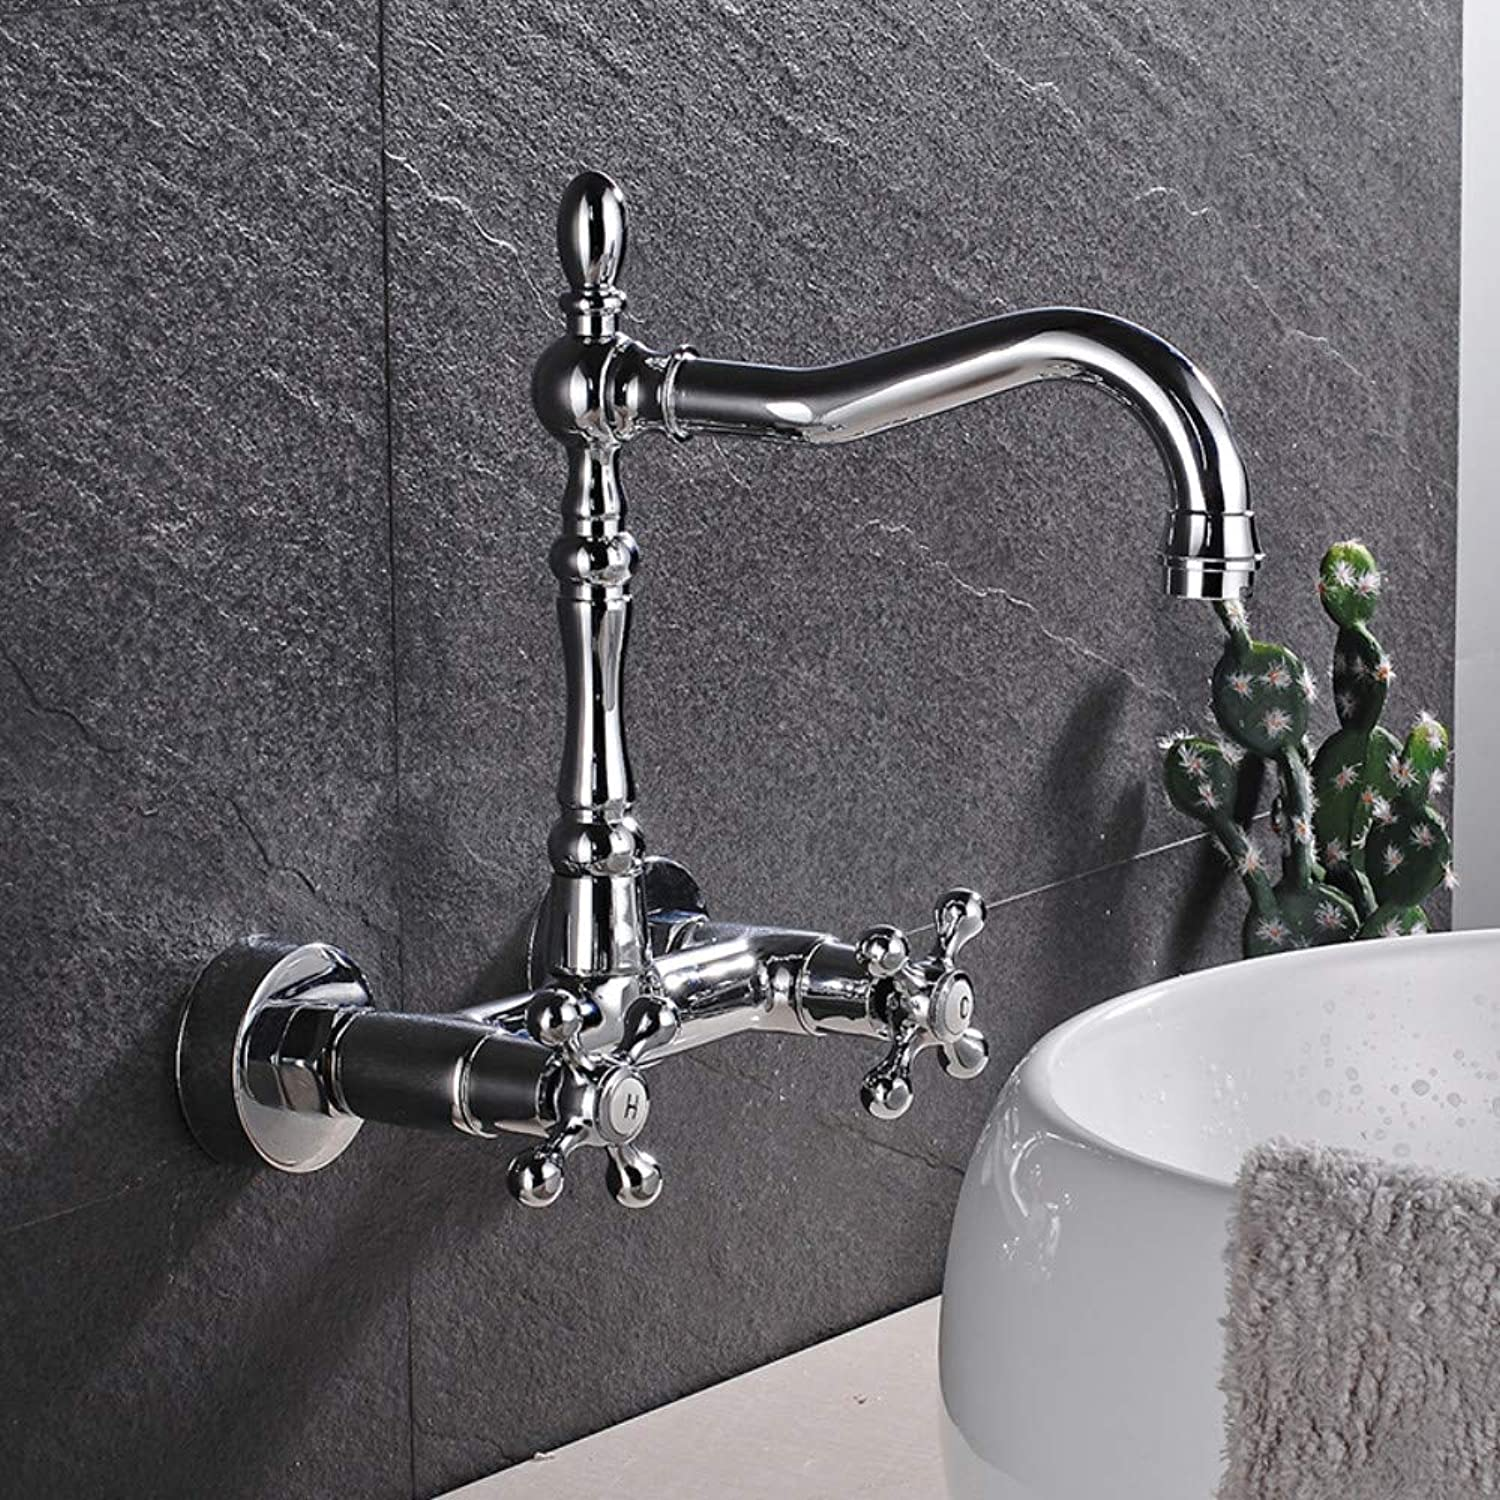 Bathroom Sink Tap Chrome Wall Mounted Bathroom Faucet Dual Handle Basin Sink Mixer Swivel Spout Hot Cold Water Tap 2 Install Hole Faucet